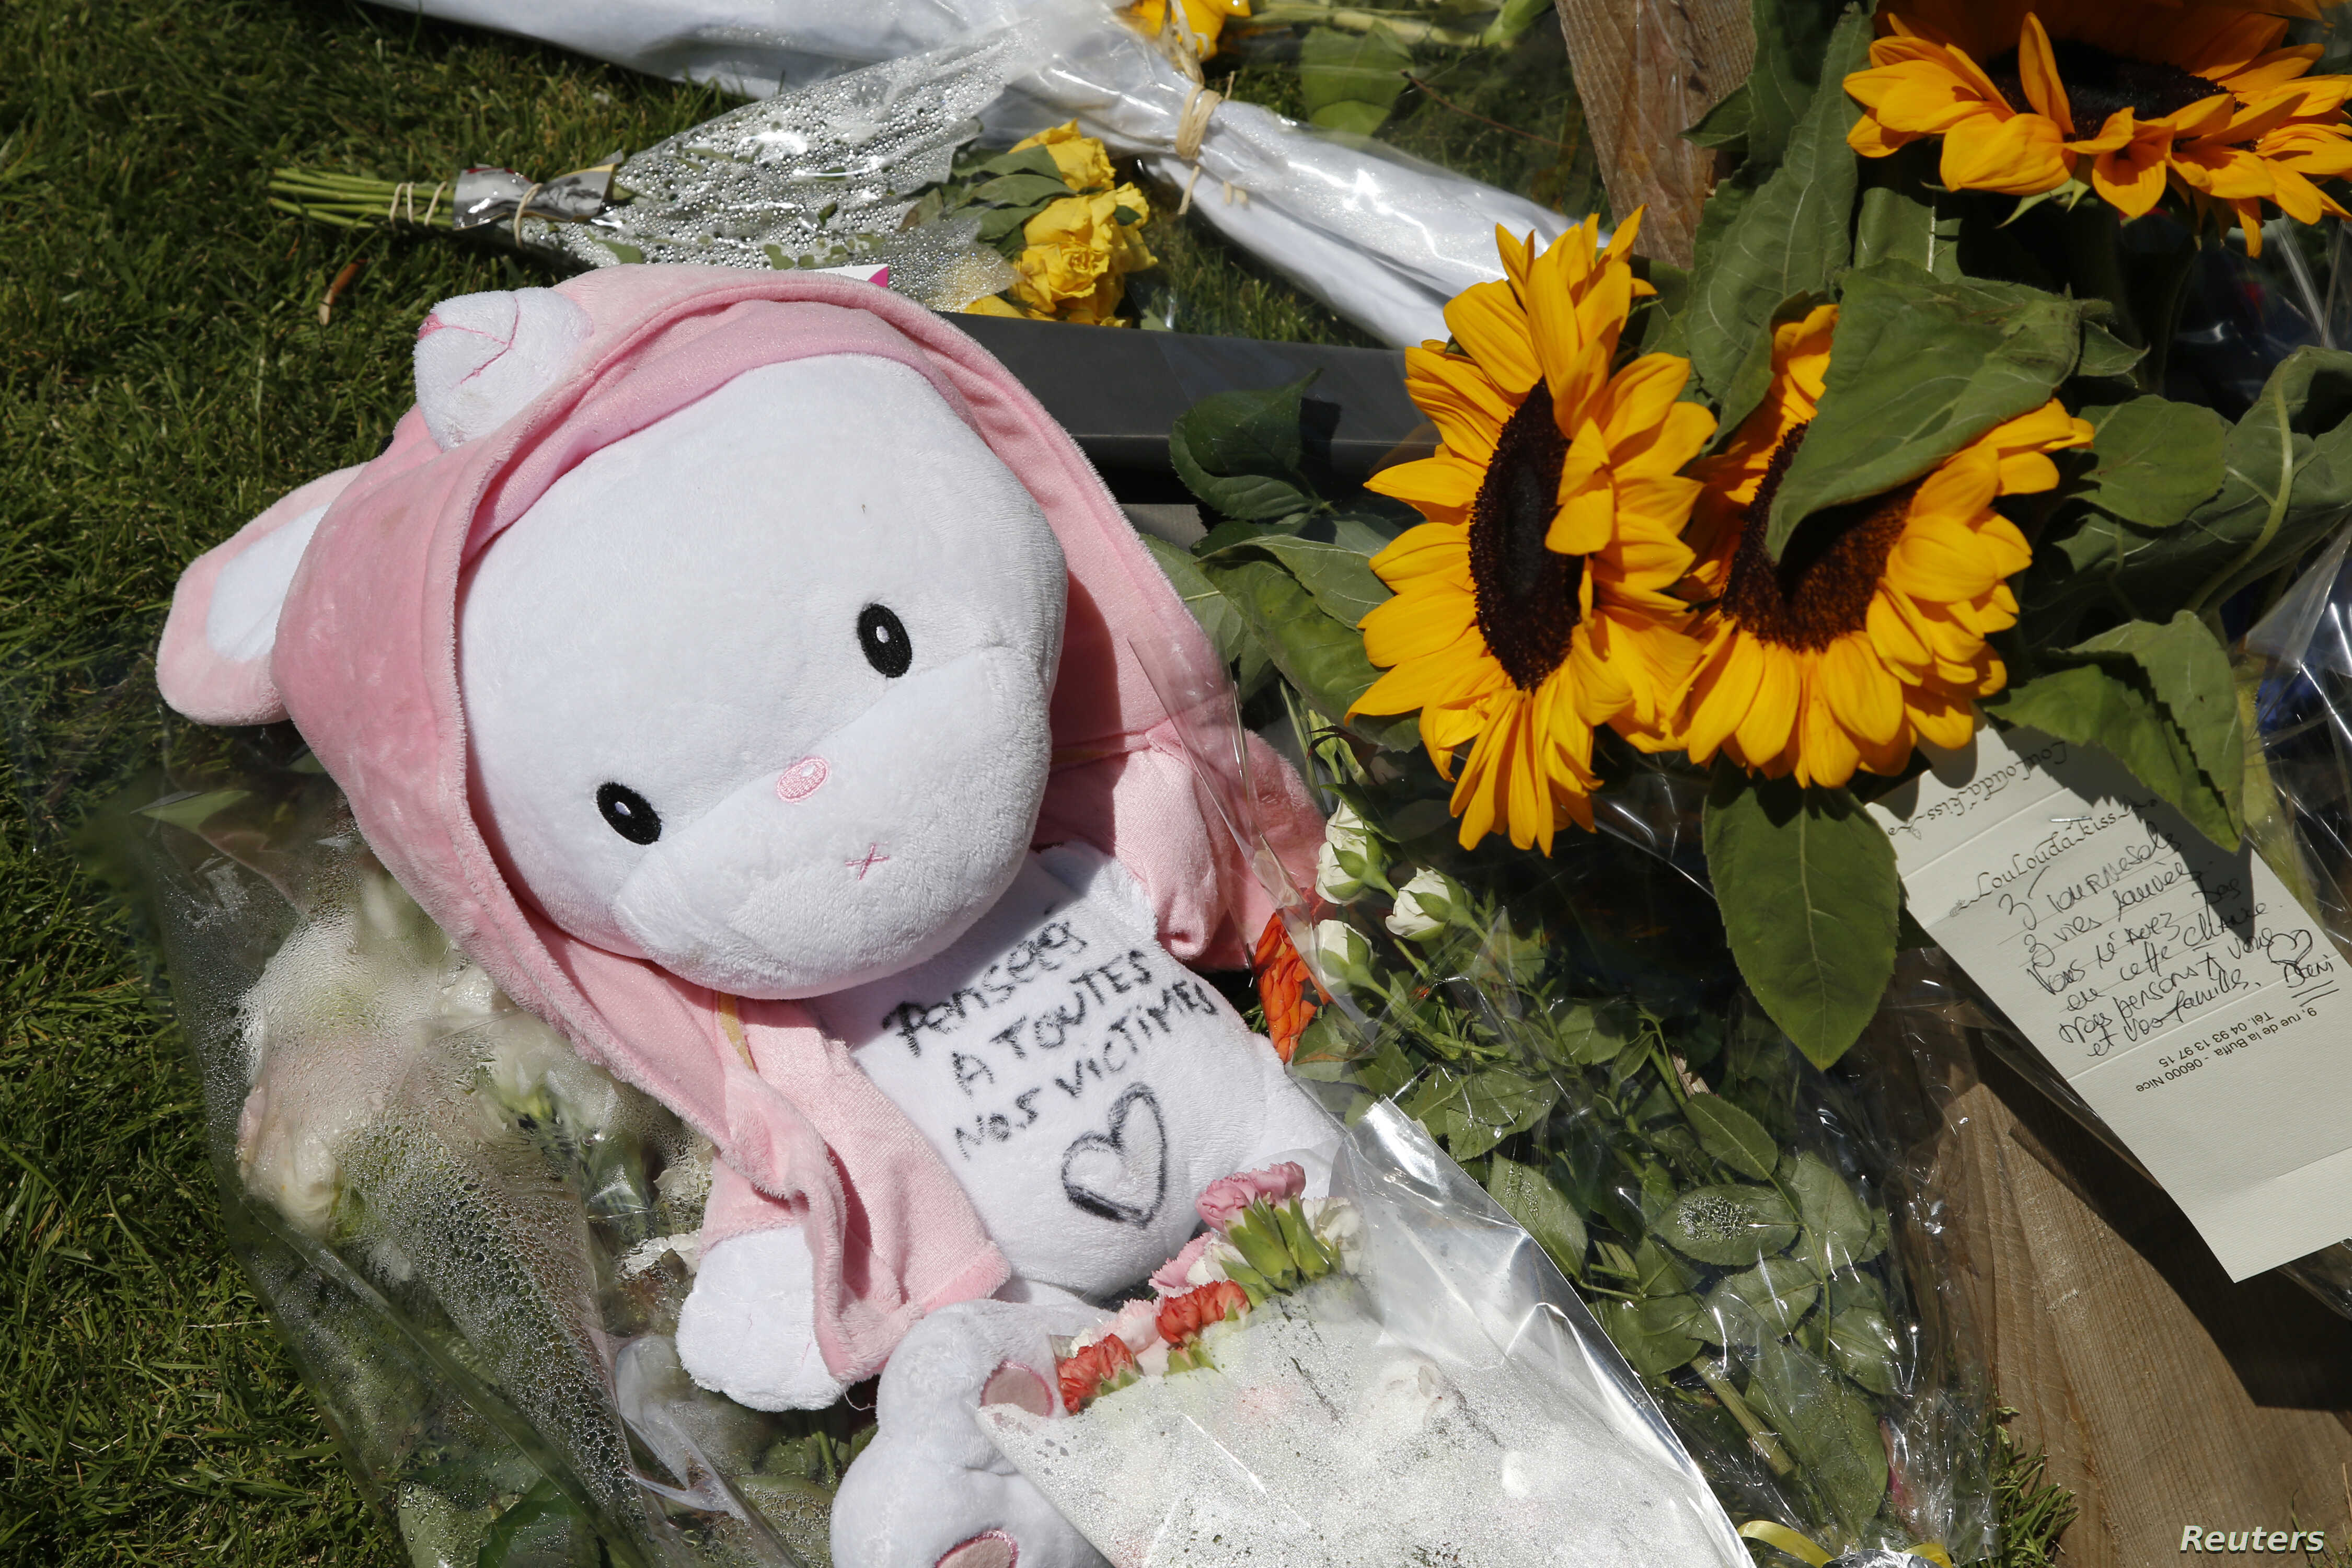 """A child's stuffed toy with the message, """"Thoughts to All the Victims"""" is seen as people pay tribute near the scene where a truck ran into a crowd at high speed killing scores and injuring more who were celebrating the Bastille Day national holiday, i..."""